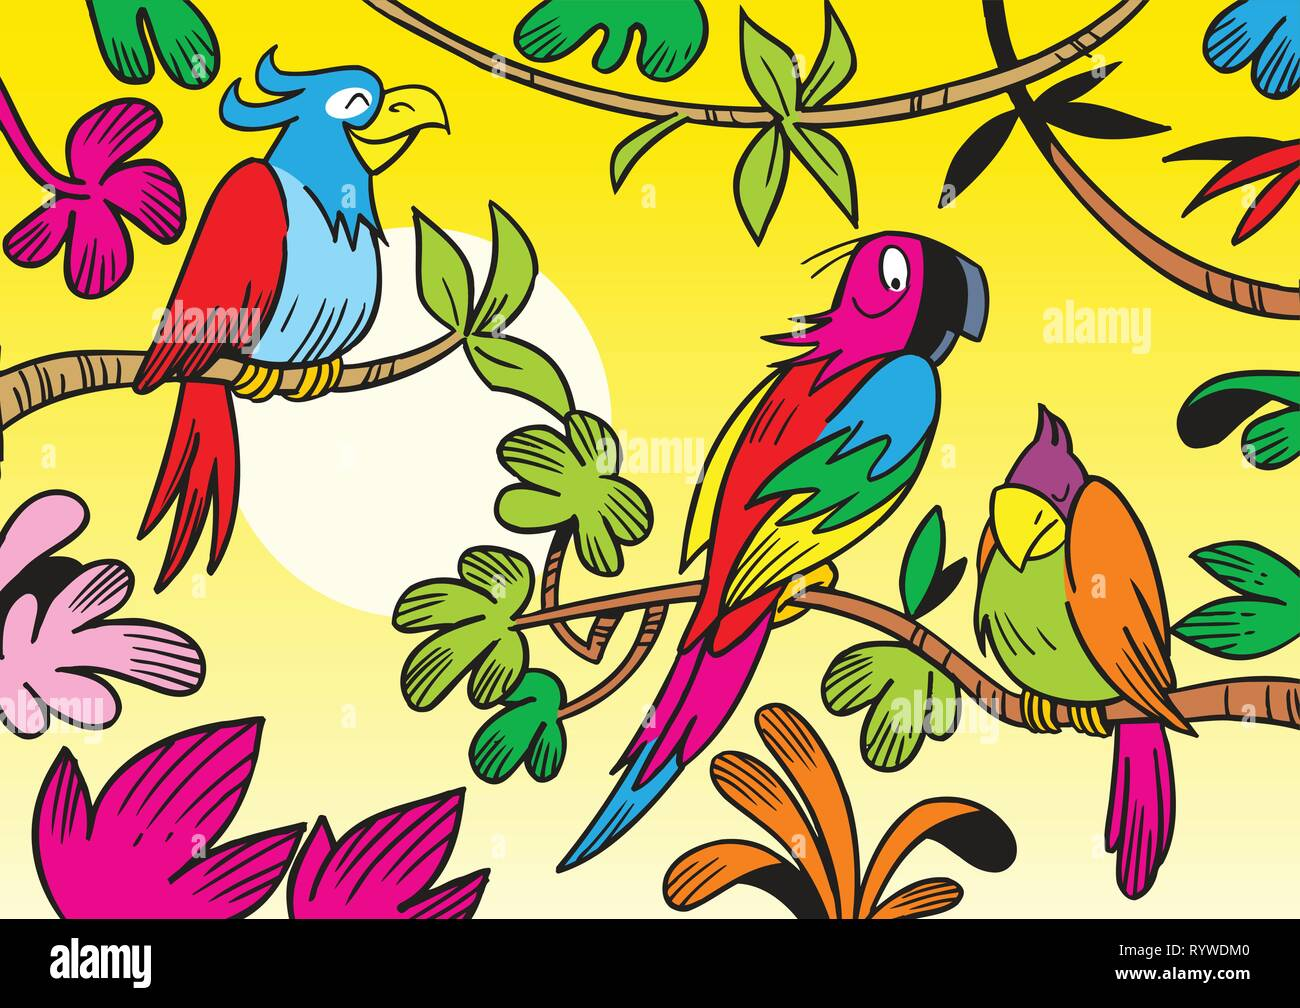 The illustration shows some beautiful tropical parrots. Illustration done in cartoon style. - Stock Vector